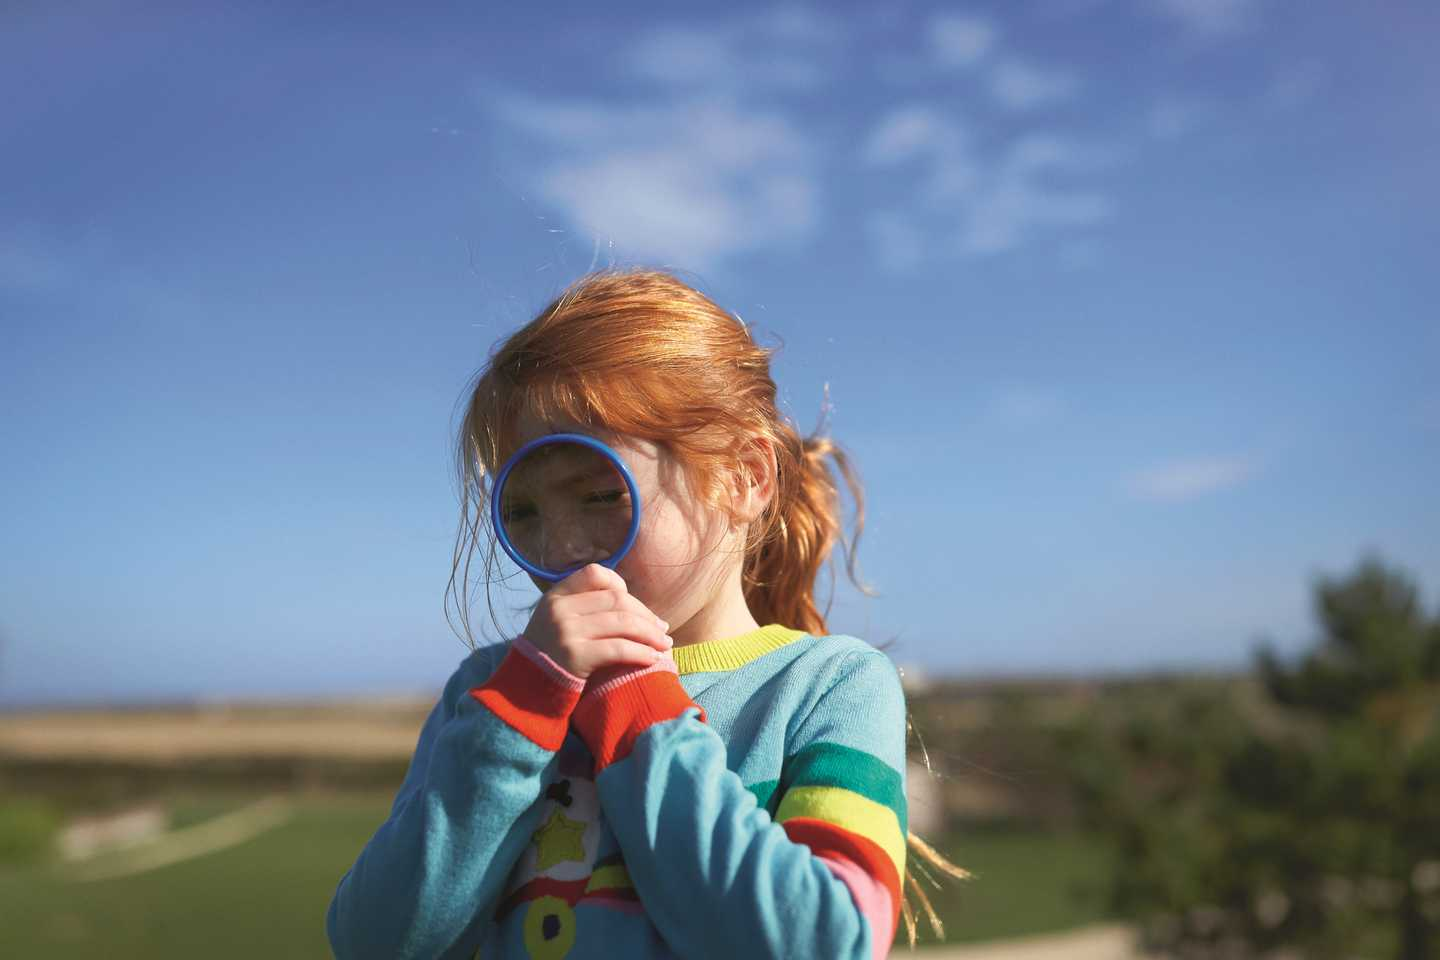 A girl looking at bugs with a magnifying glass